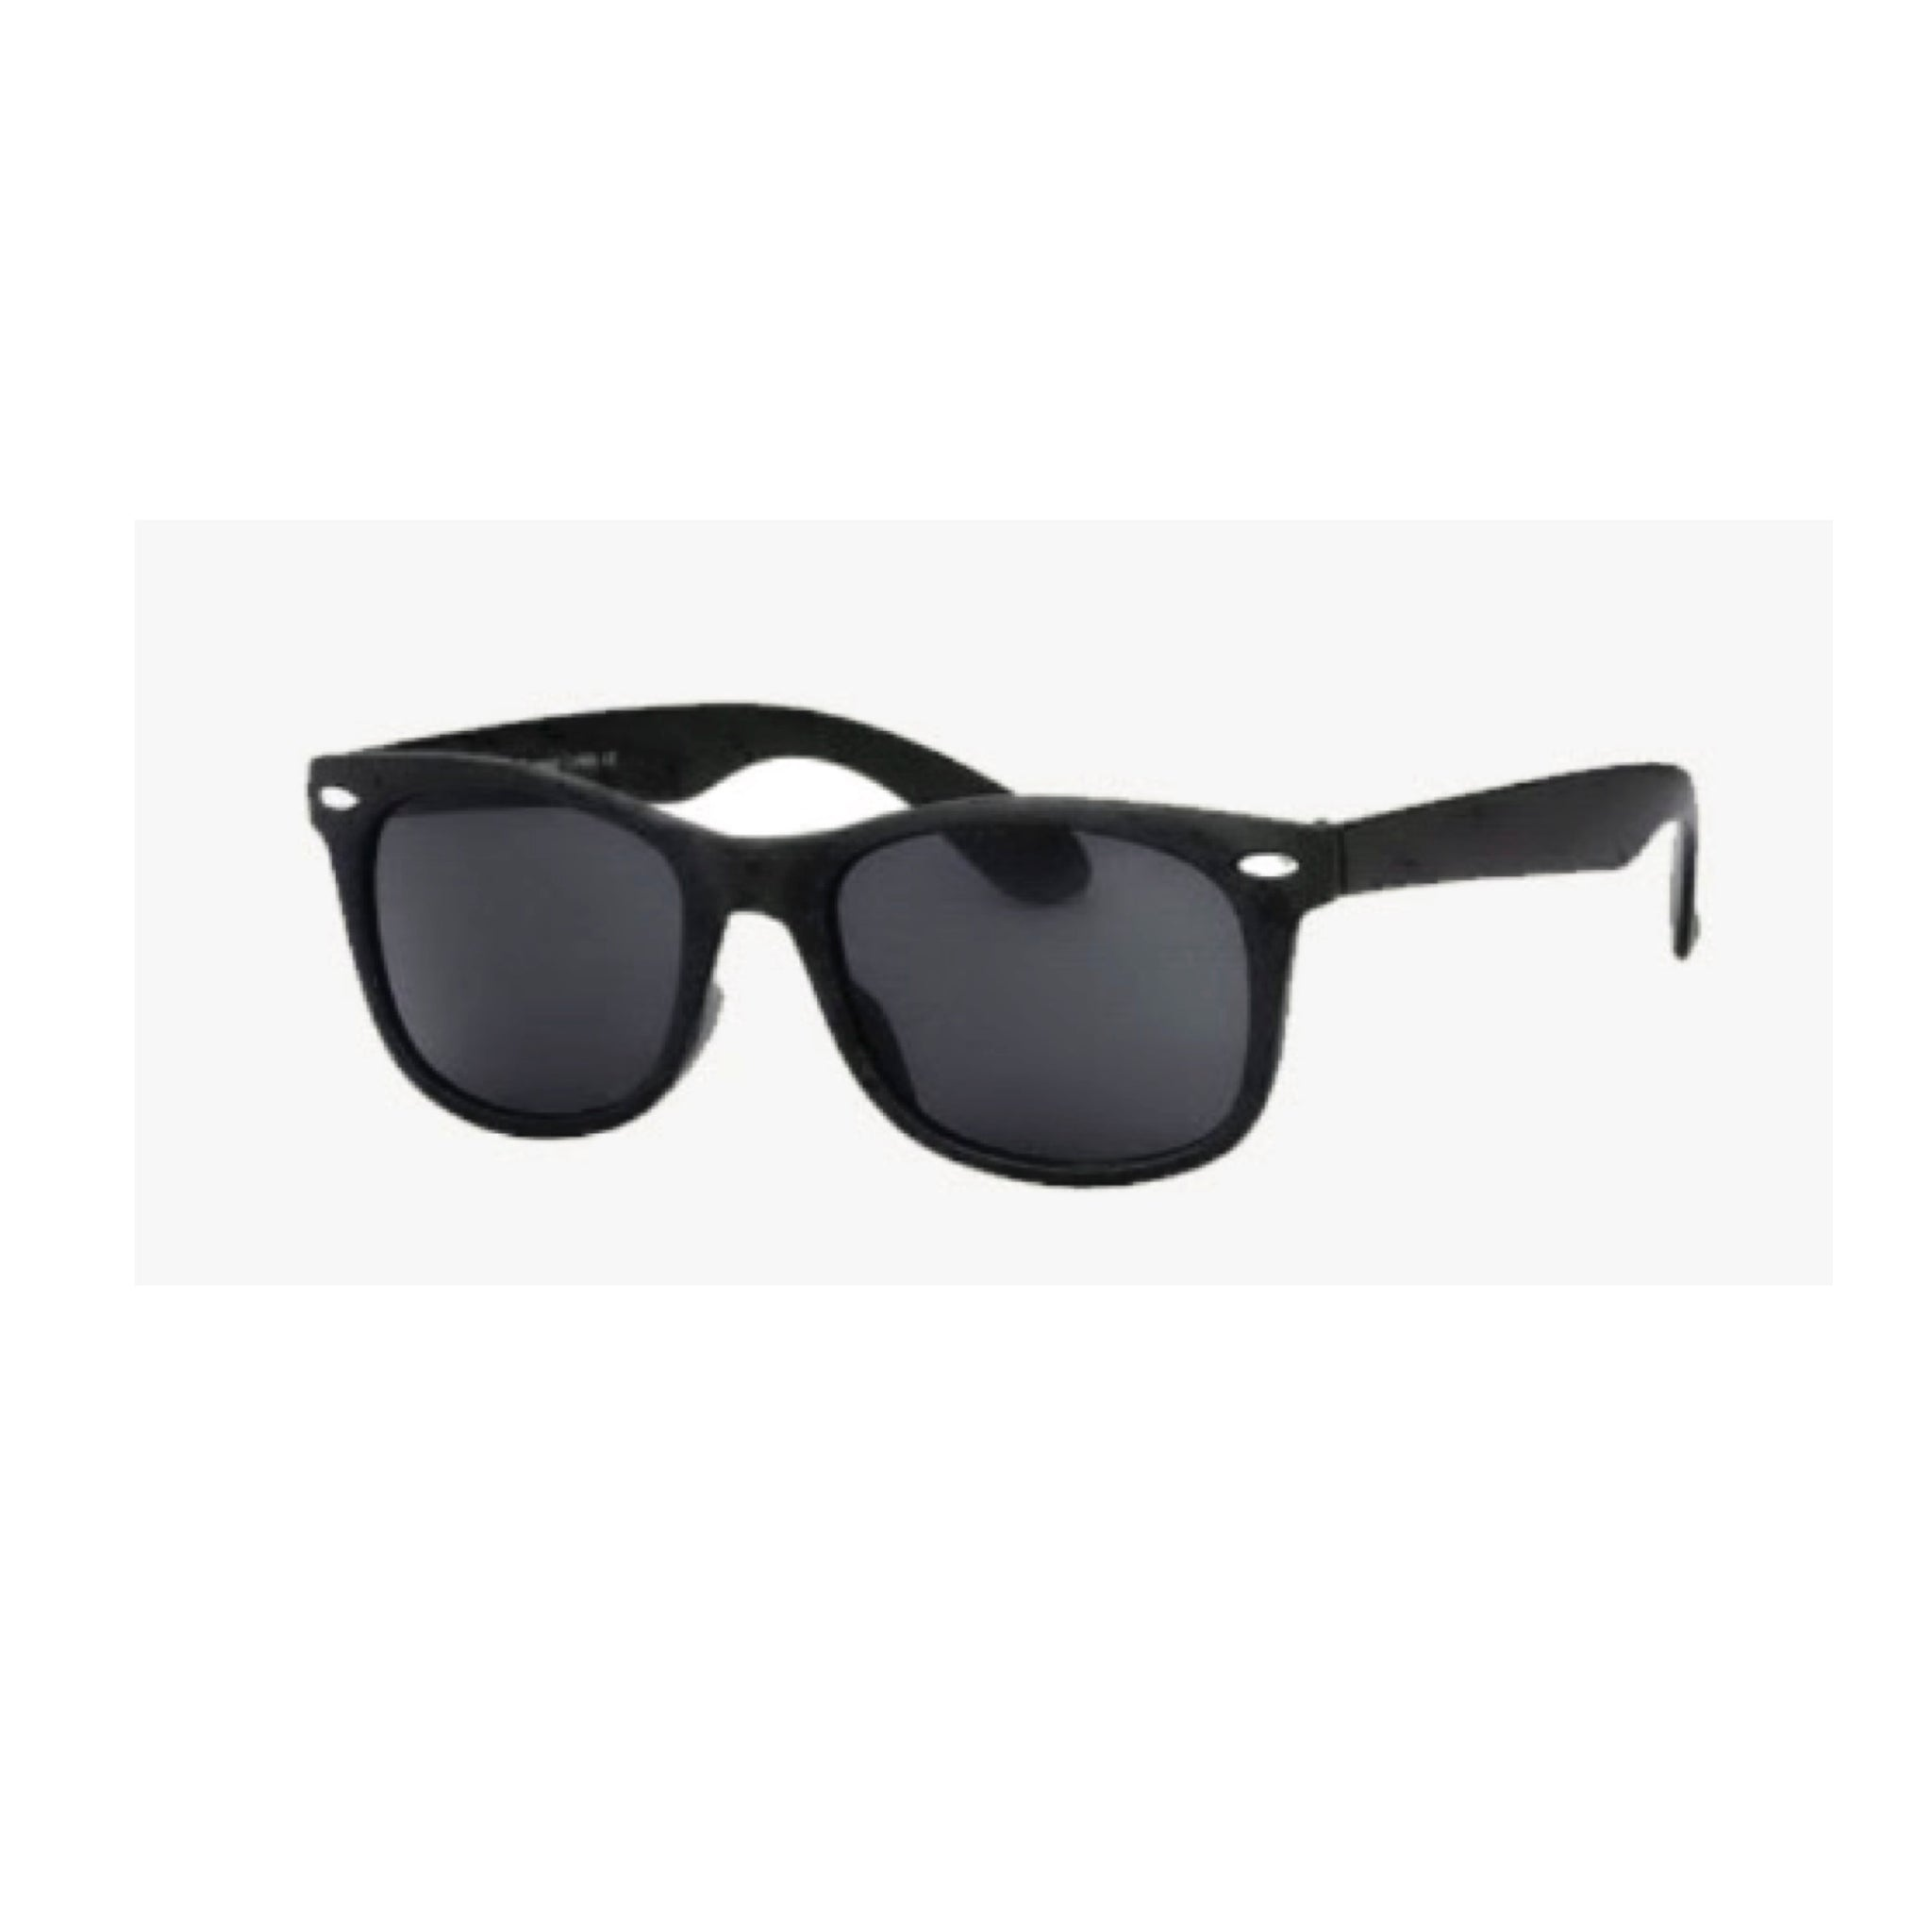 MATTE FINISH BLACK SUNGLASSES - svnx